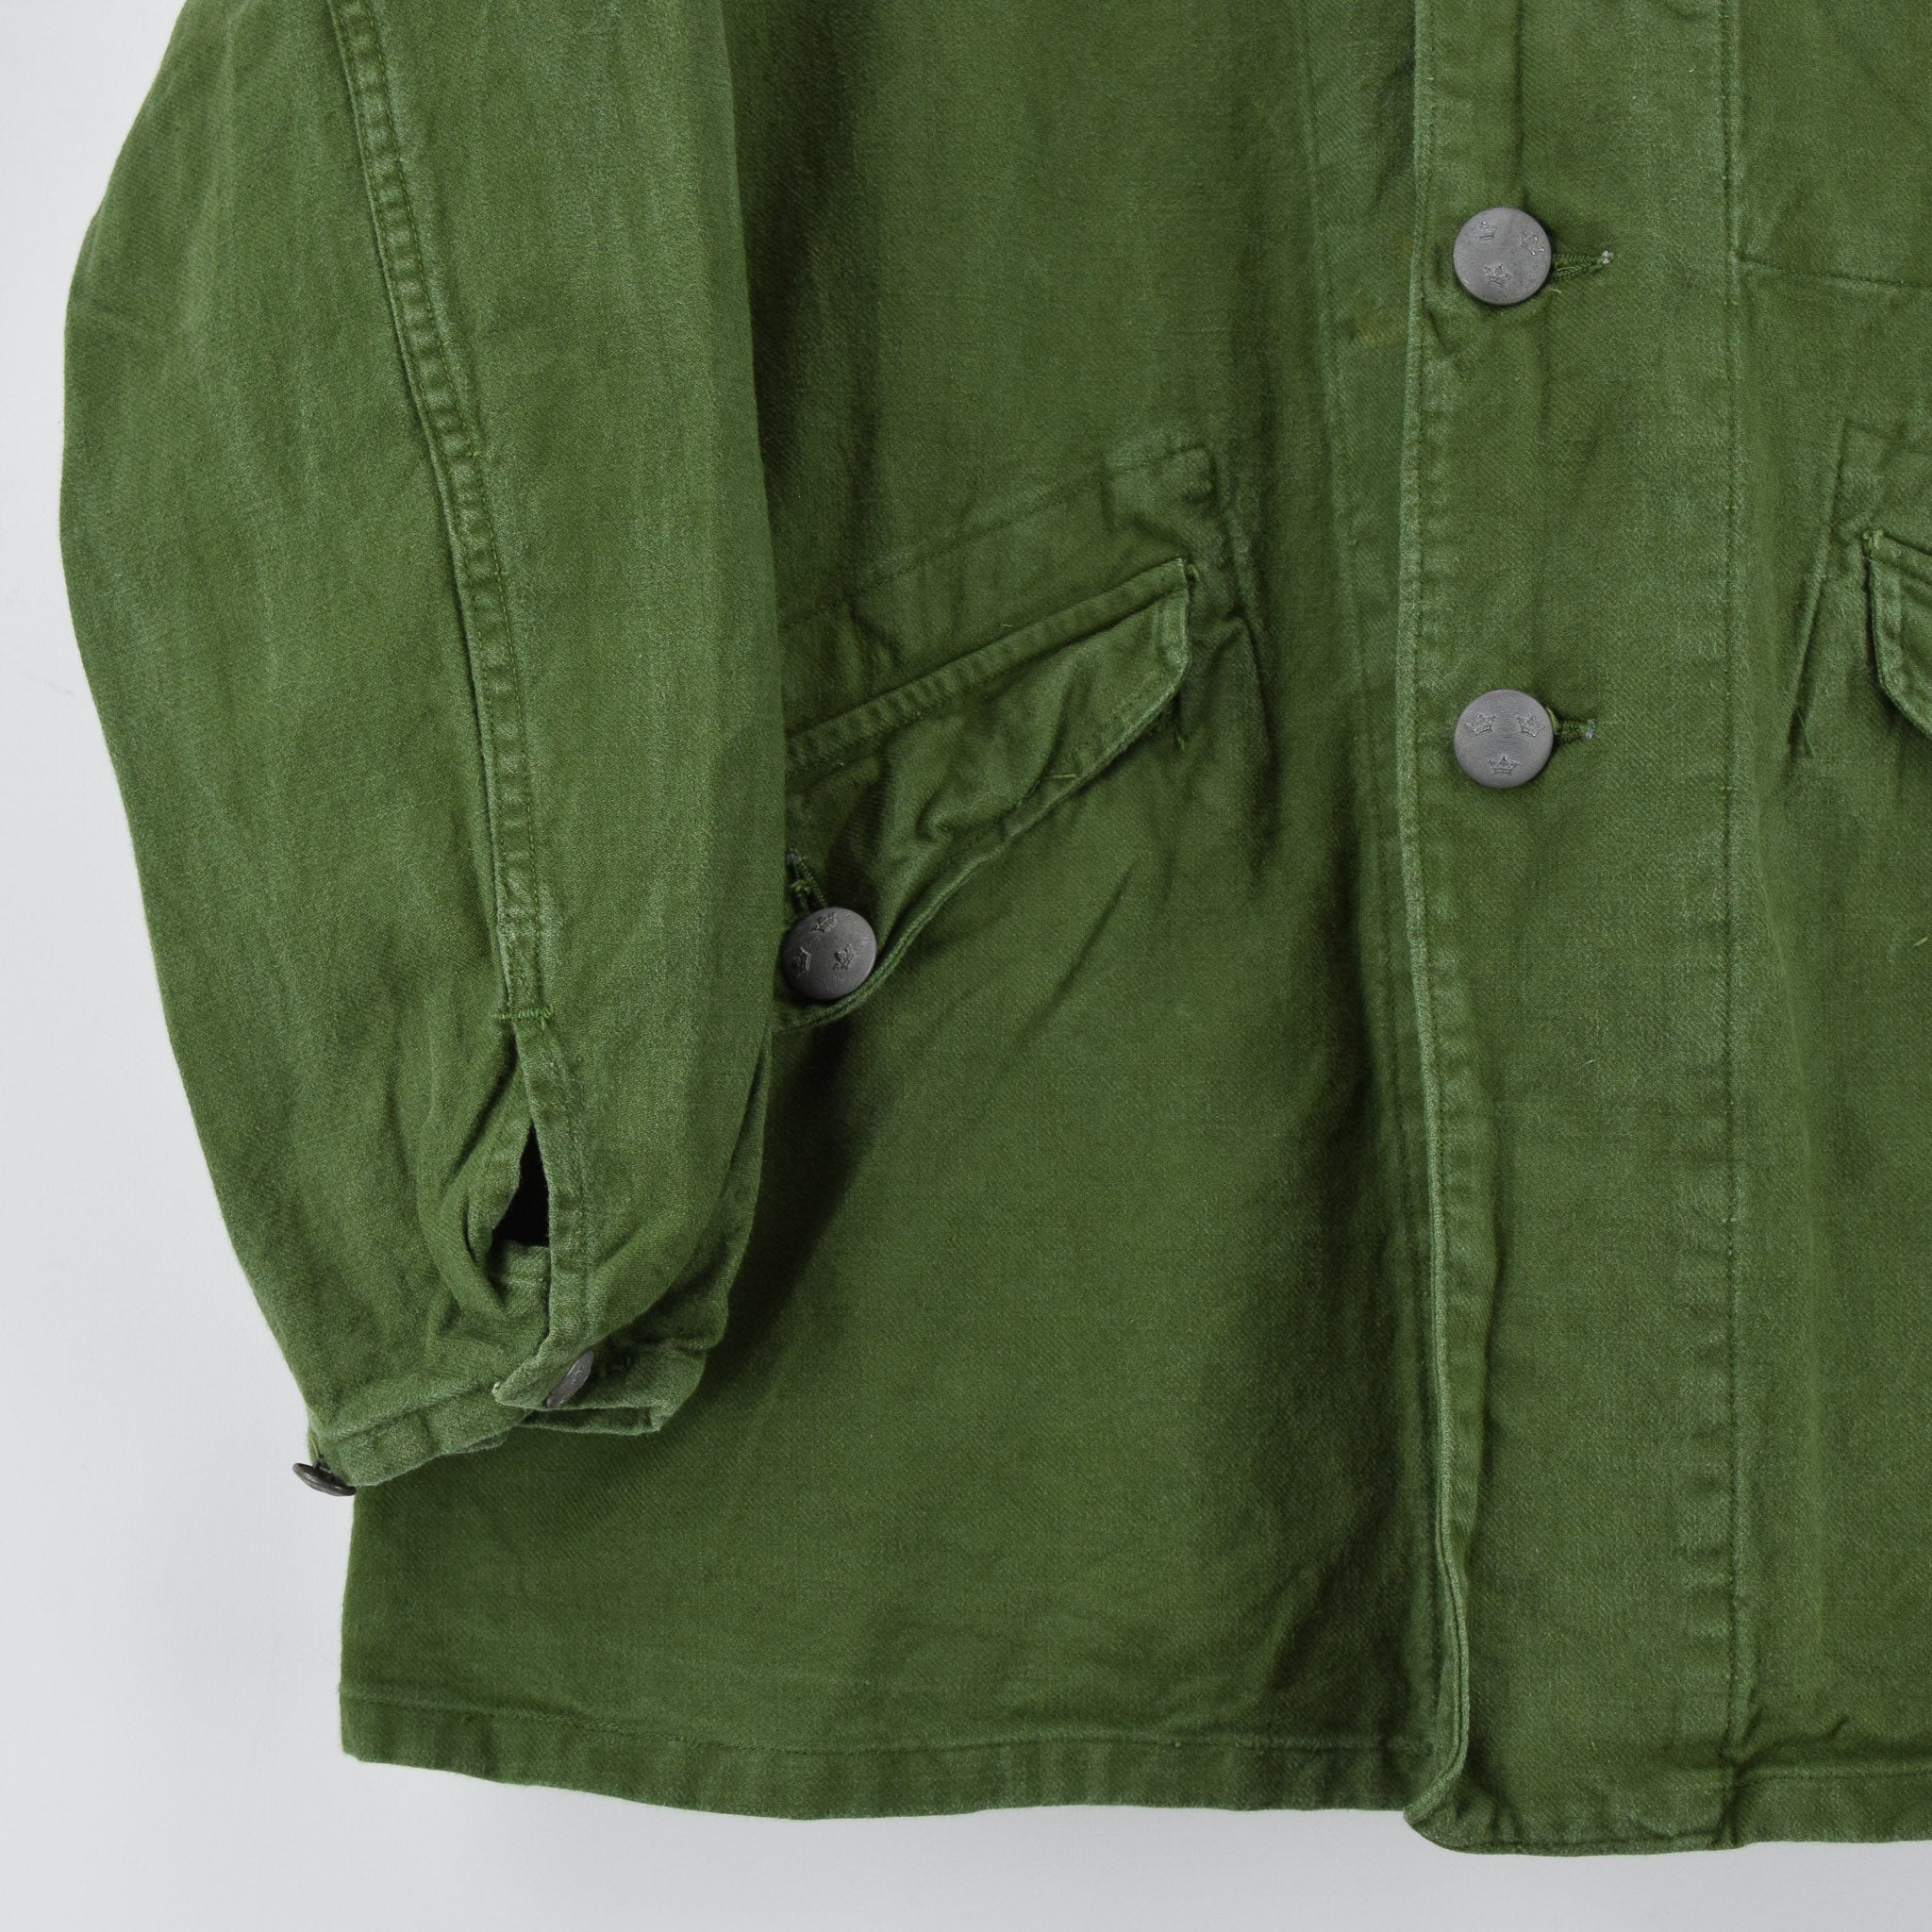 Vintage 60s Swedish Military Field Jacket Worker Style Distressed Green S front hem